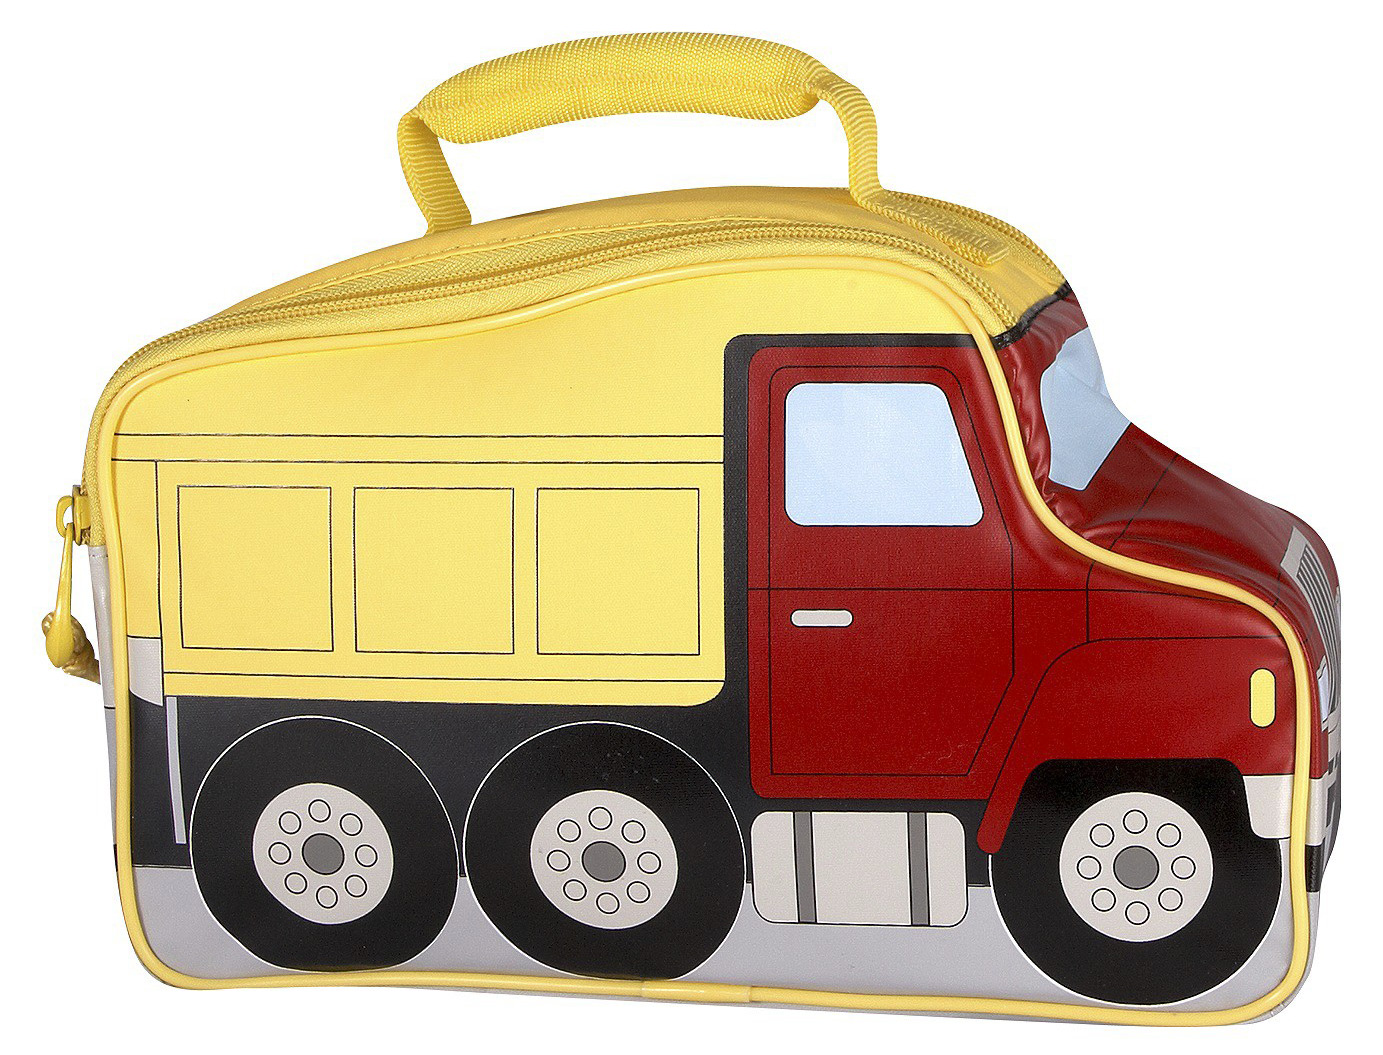 Dump truck lunch box | Sheknows.com